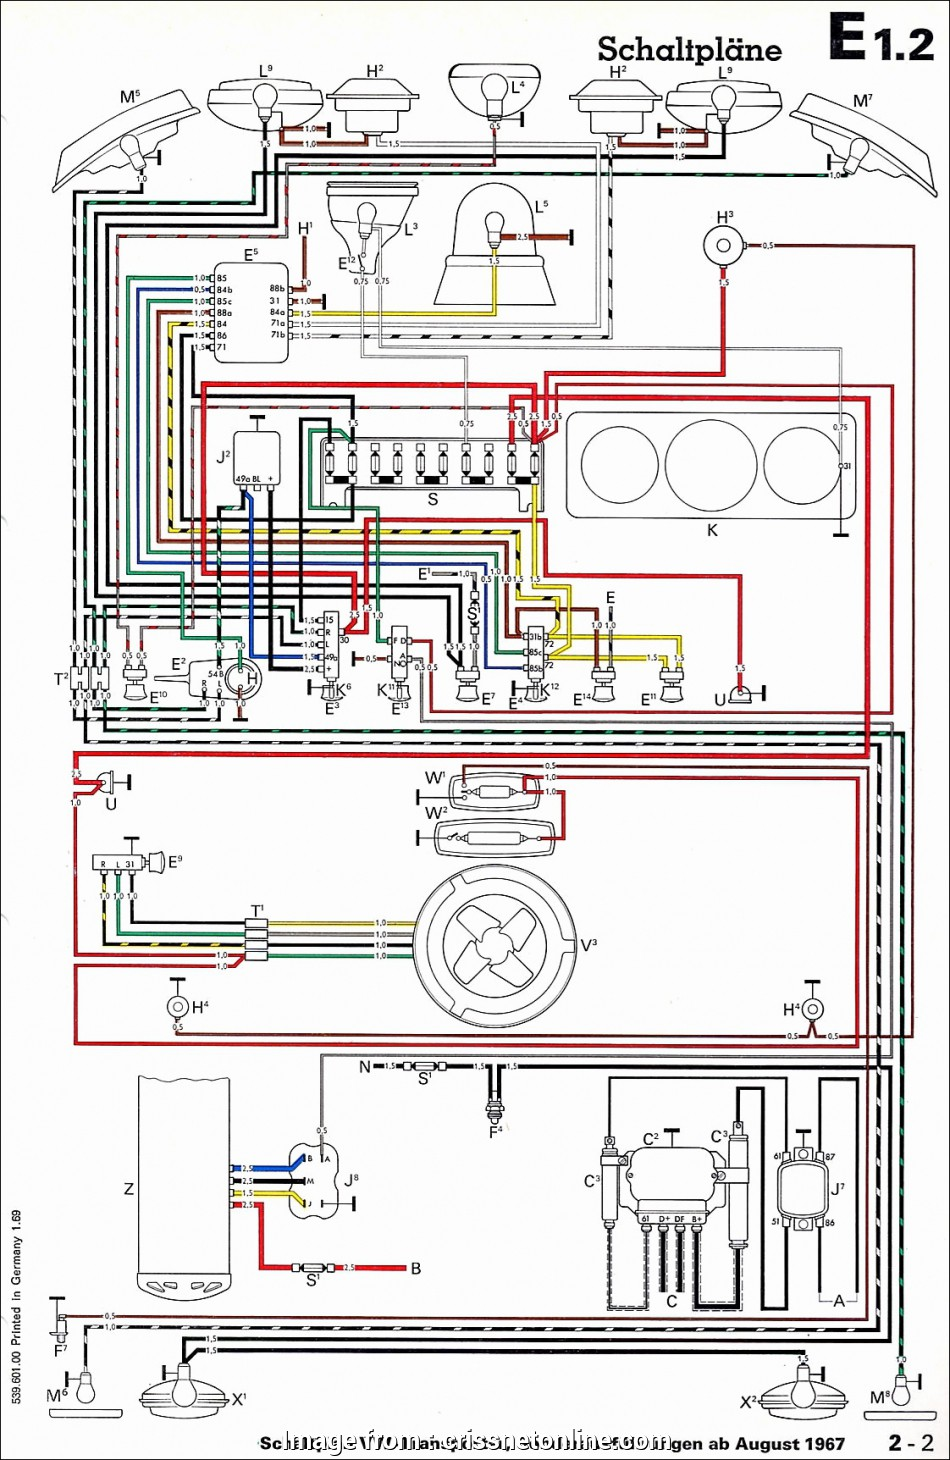 vw beetle starter wiring diagram Vw Beetle Starter Wiring Diagram Best Of Wiring Diagram Vw Transporter Wire Data Schema • 13 New Vw Beetle Starter Wiring Diagram Photos